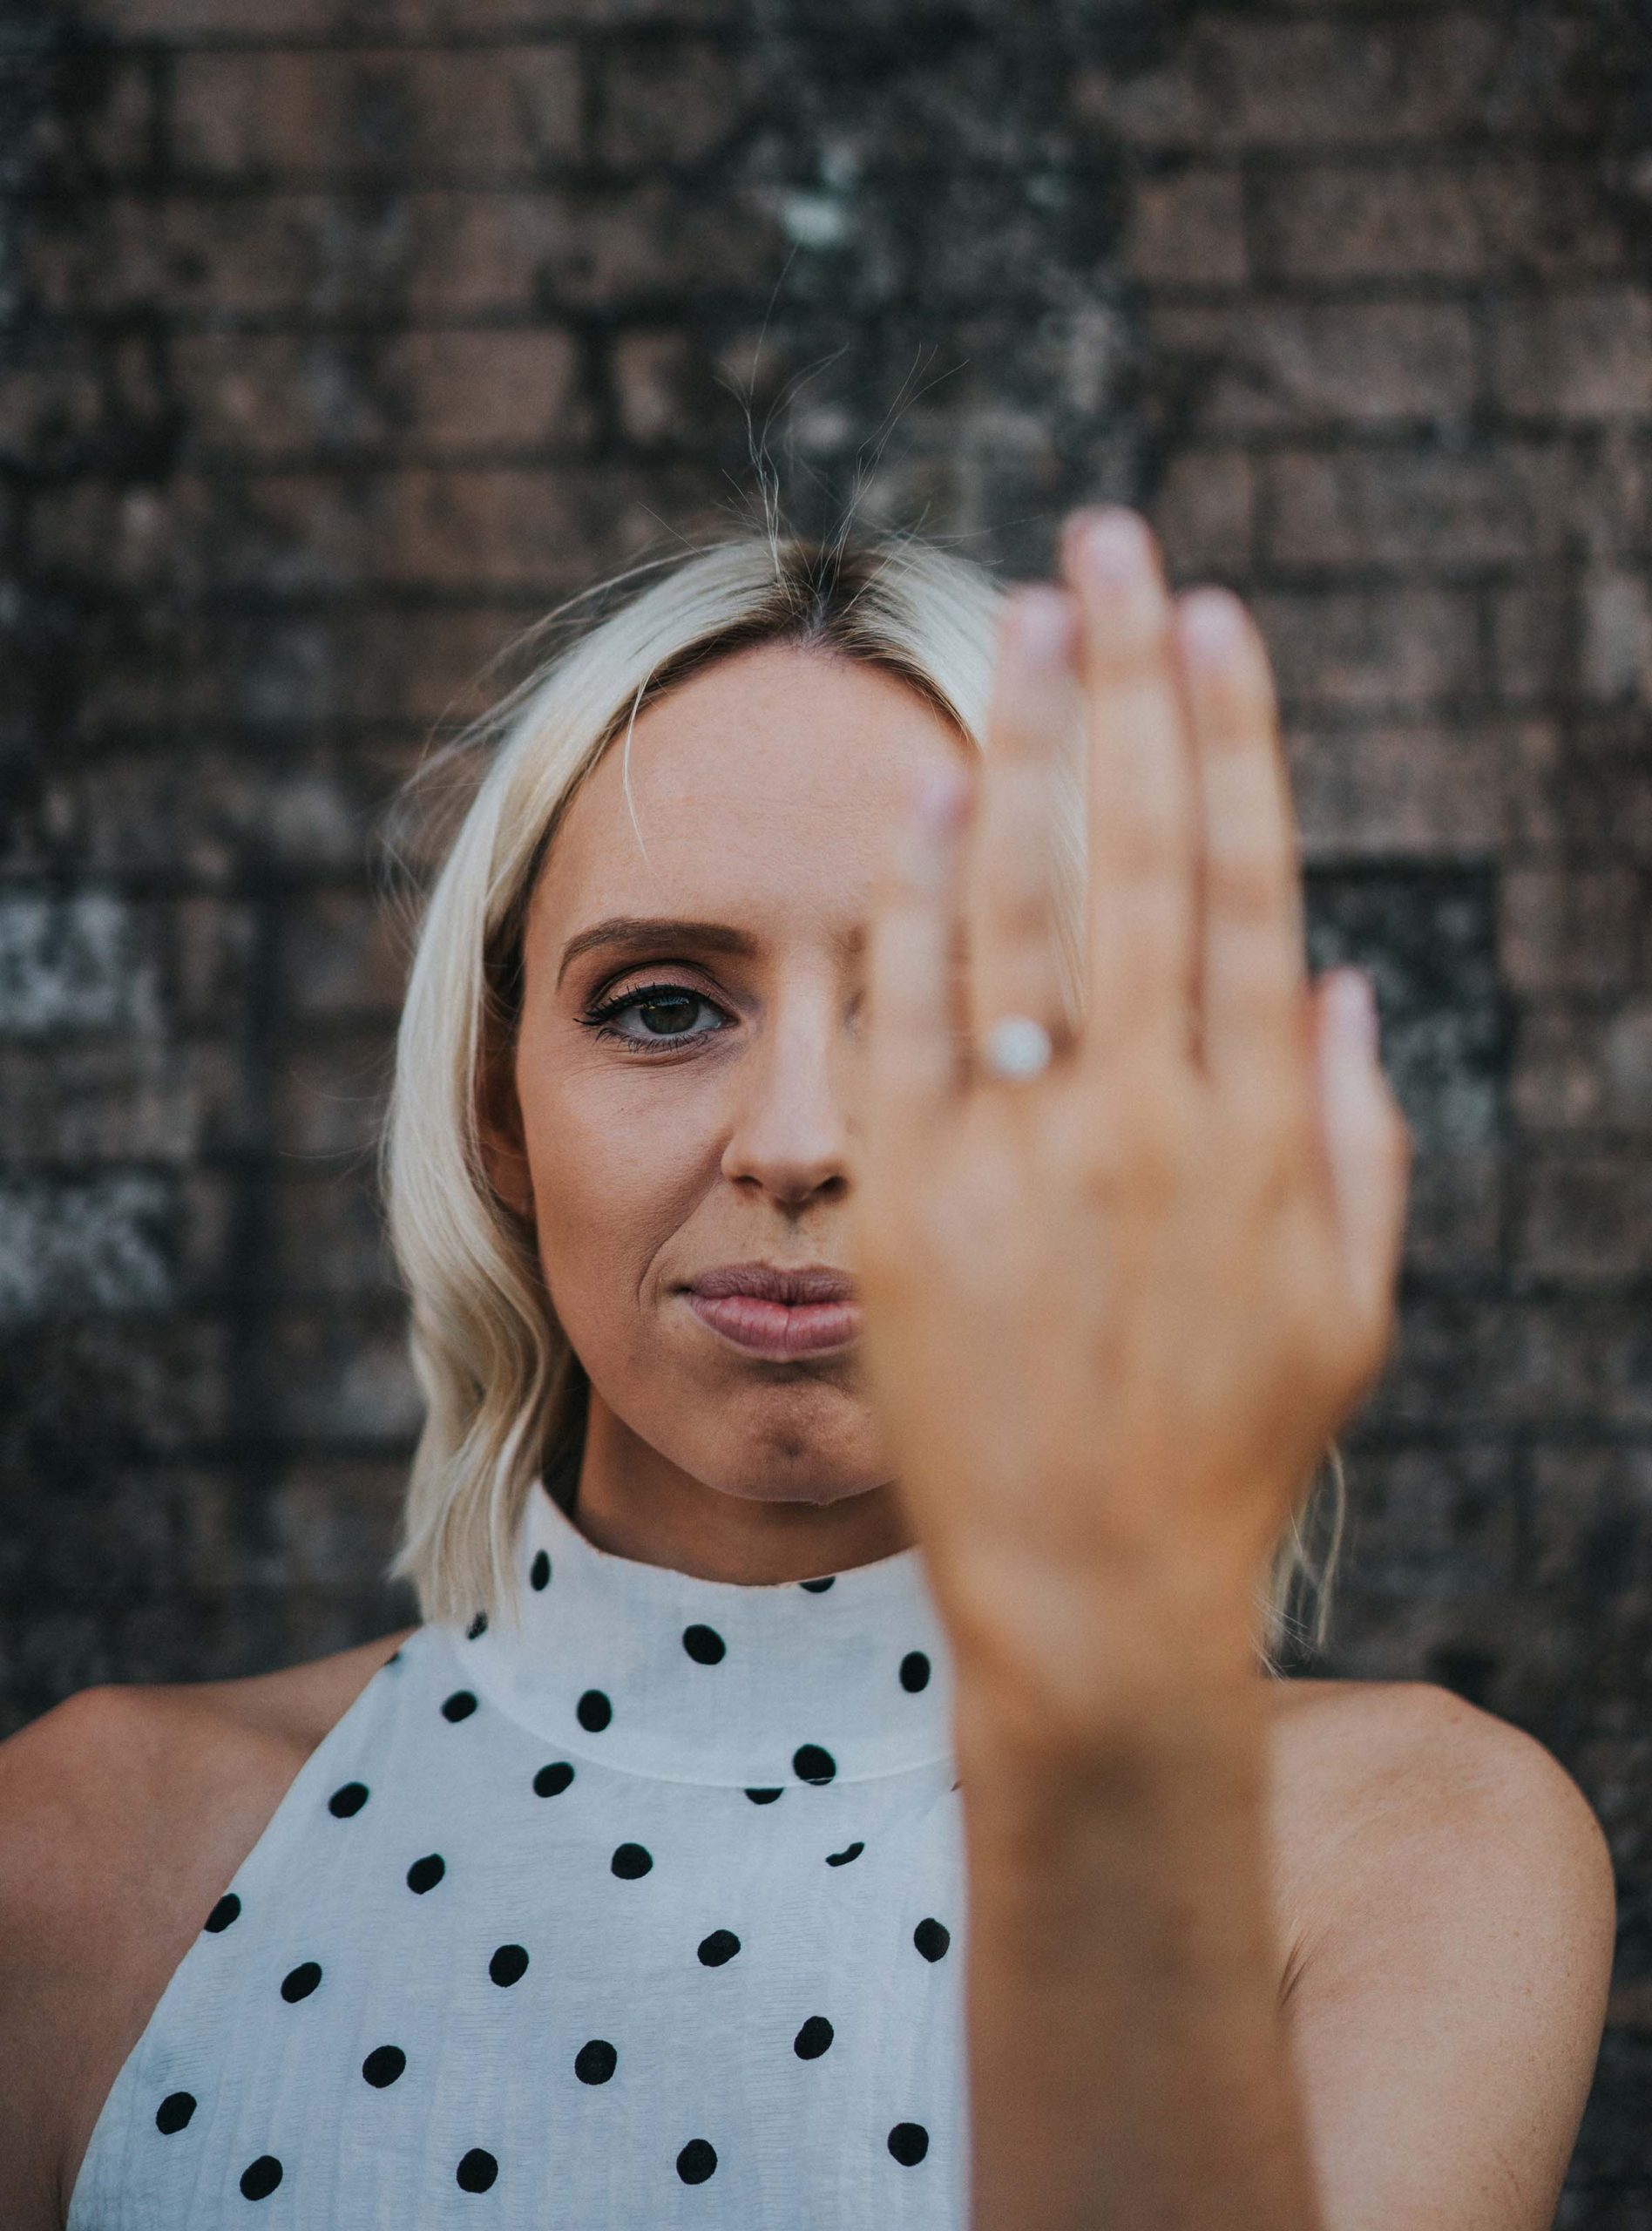 bride covering half of face with hand with engagement ring out of focus